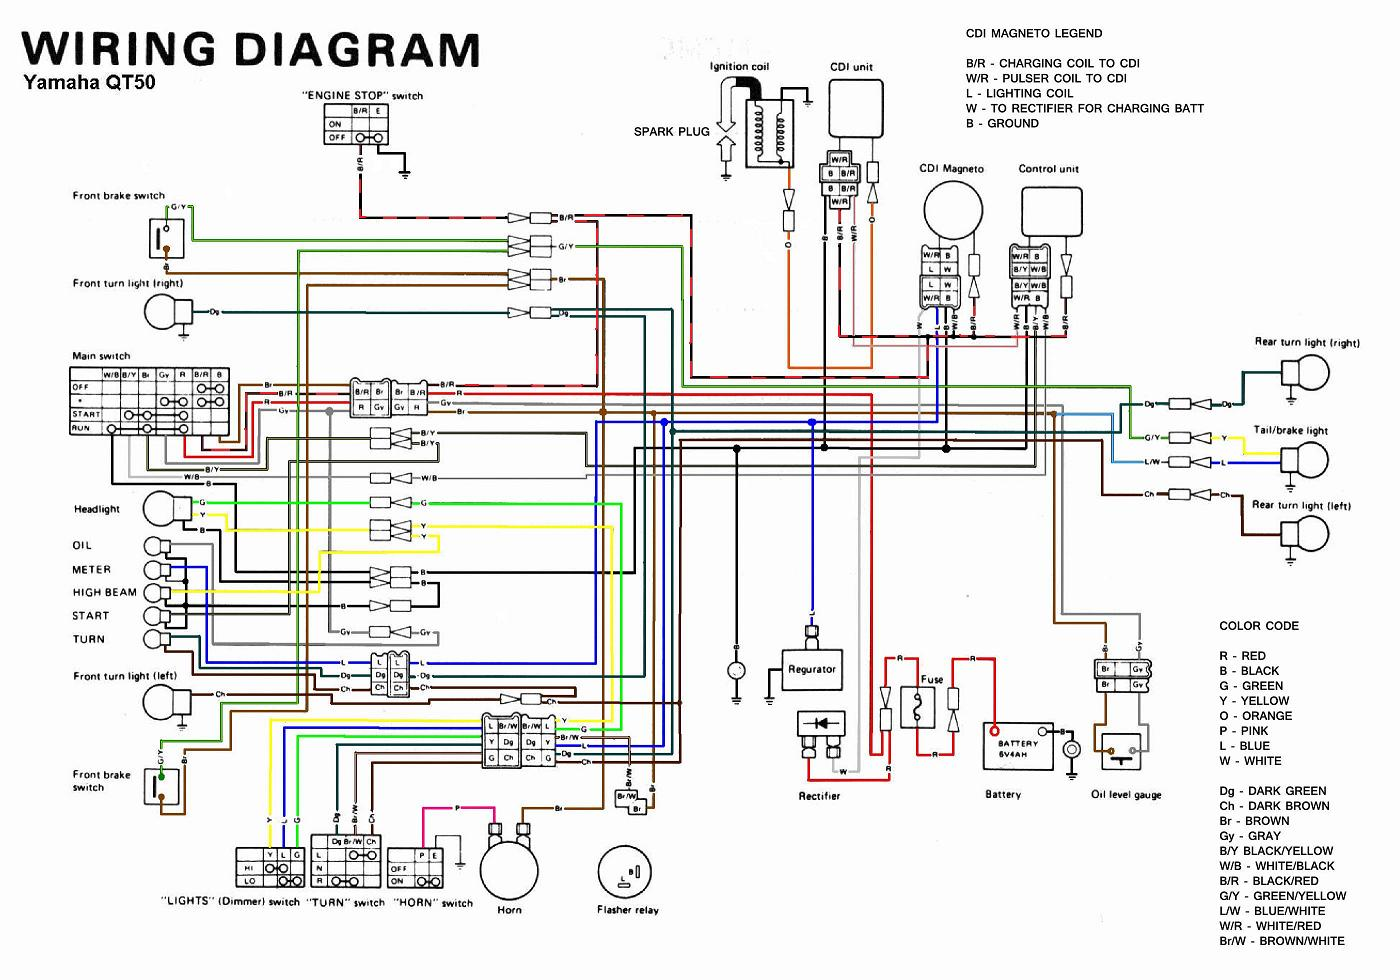 Yamaha QT50 Wiring Diagram yamaha qt50 wiring diagram yamaha qt50 luvin and other nopeds yamaha wiring harness diagram at readyjetset.co